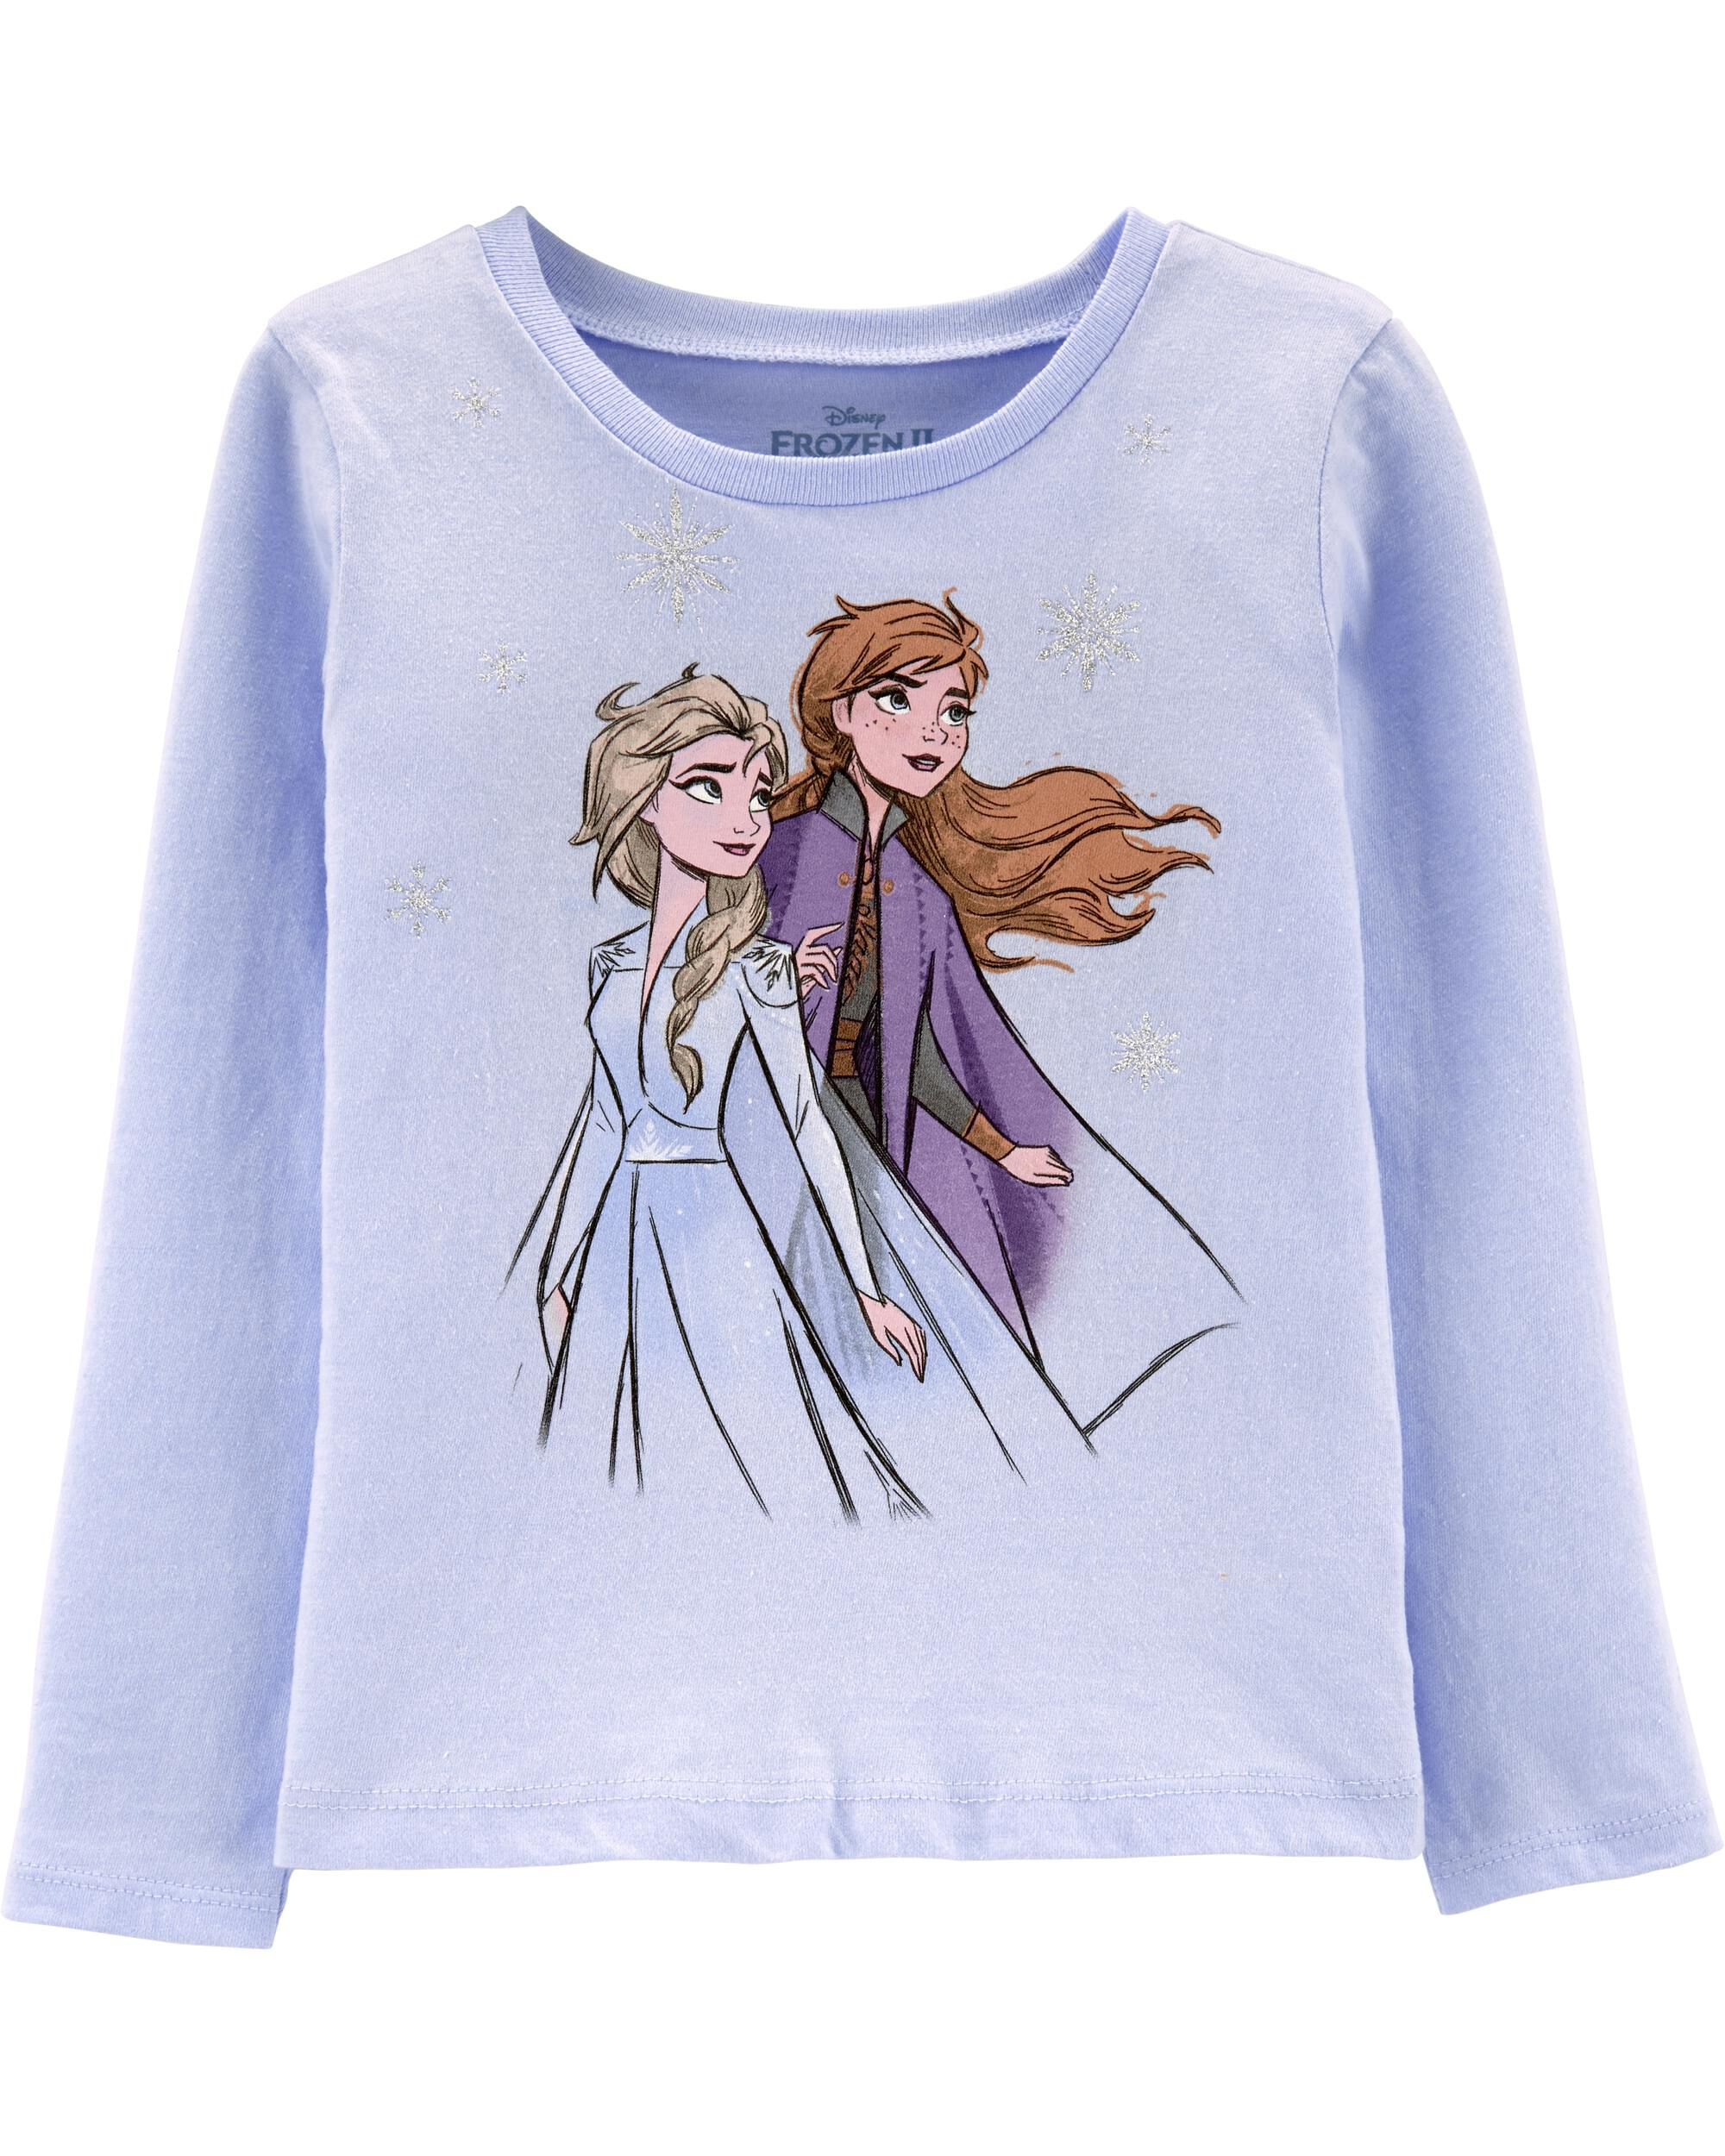 PCLOUD Frozen Childrens Solid Color Casual Long Sleeve T-Shirt